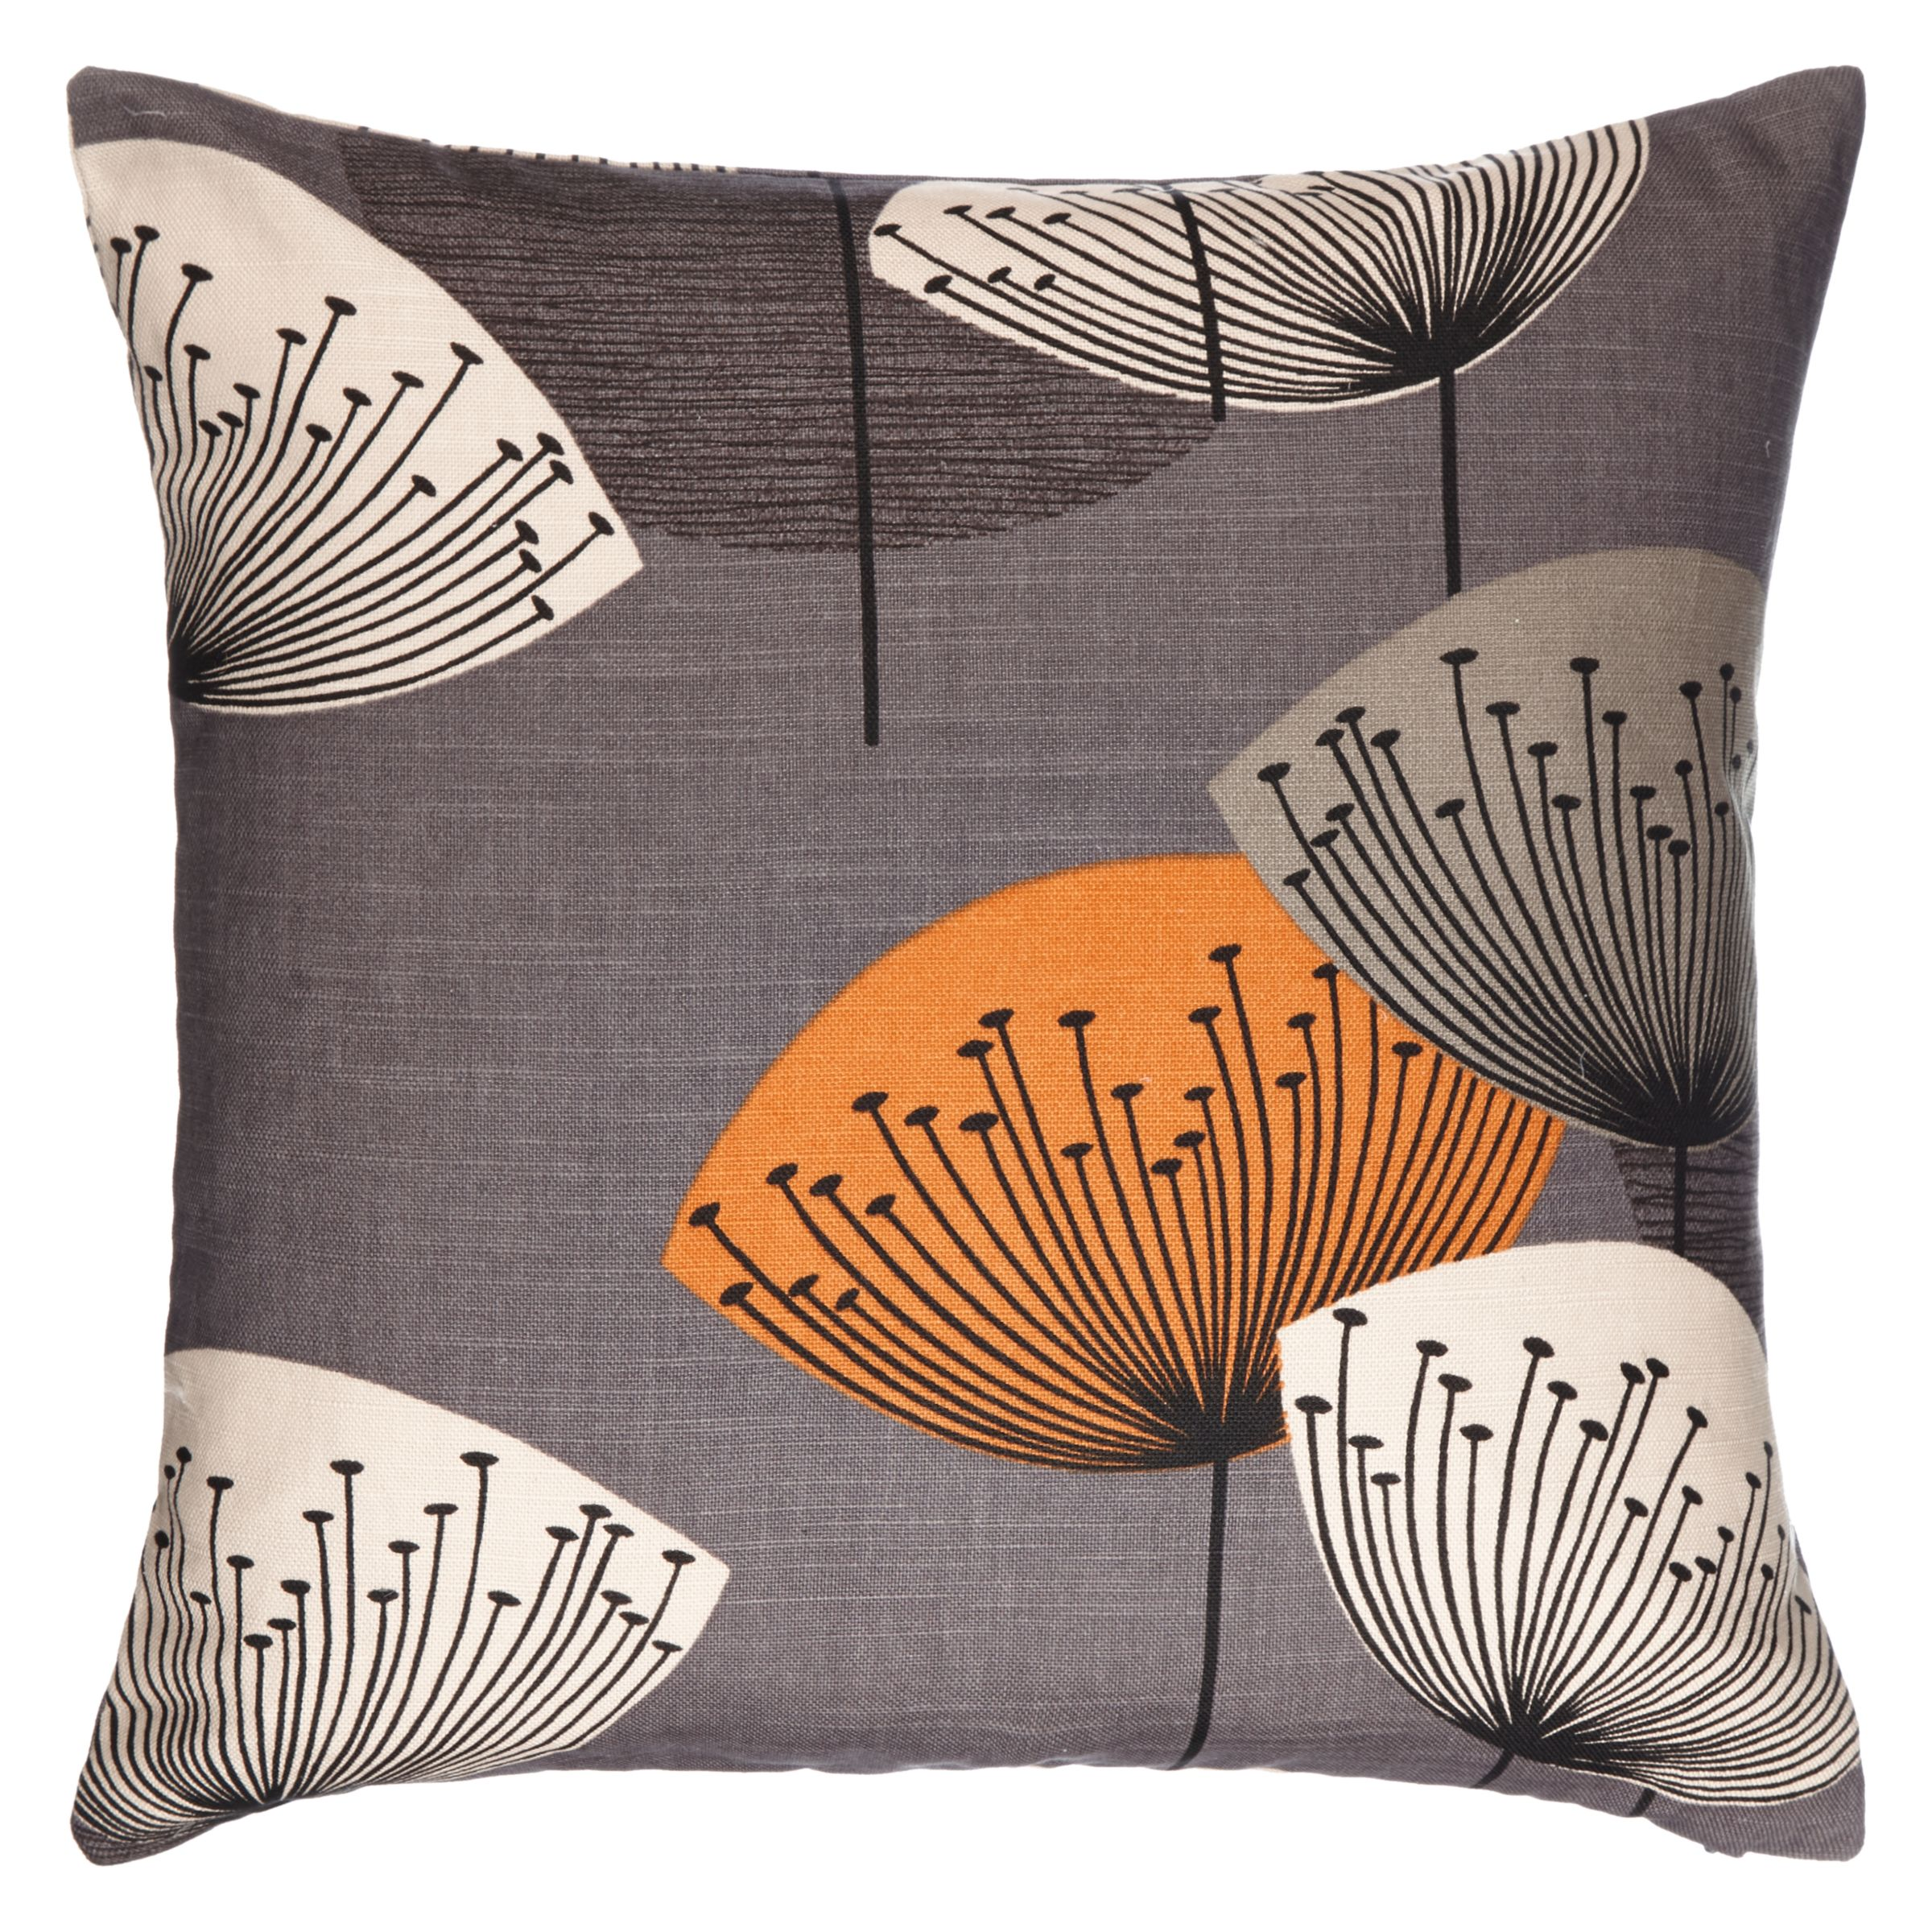 Sanderson Sanderson Dandelion Clocks Cushion